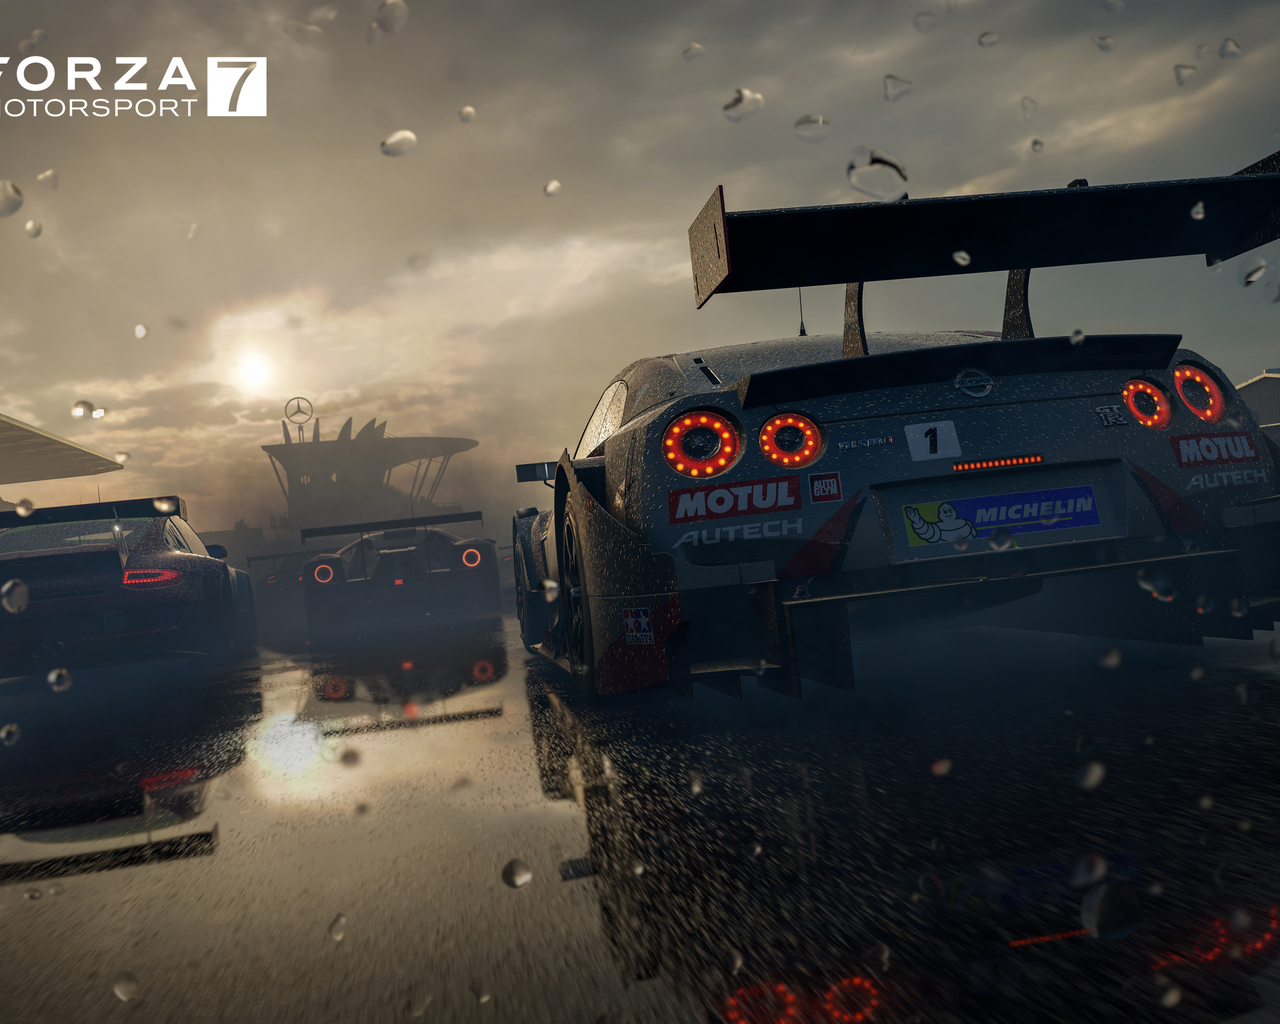 1280x1024 forza motorsport 7 4k 1280x1024 resolution hd 4k wallpapers images backgrounds - Forza logo wallpaper ...